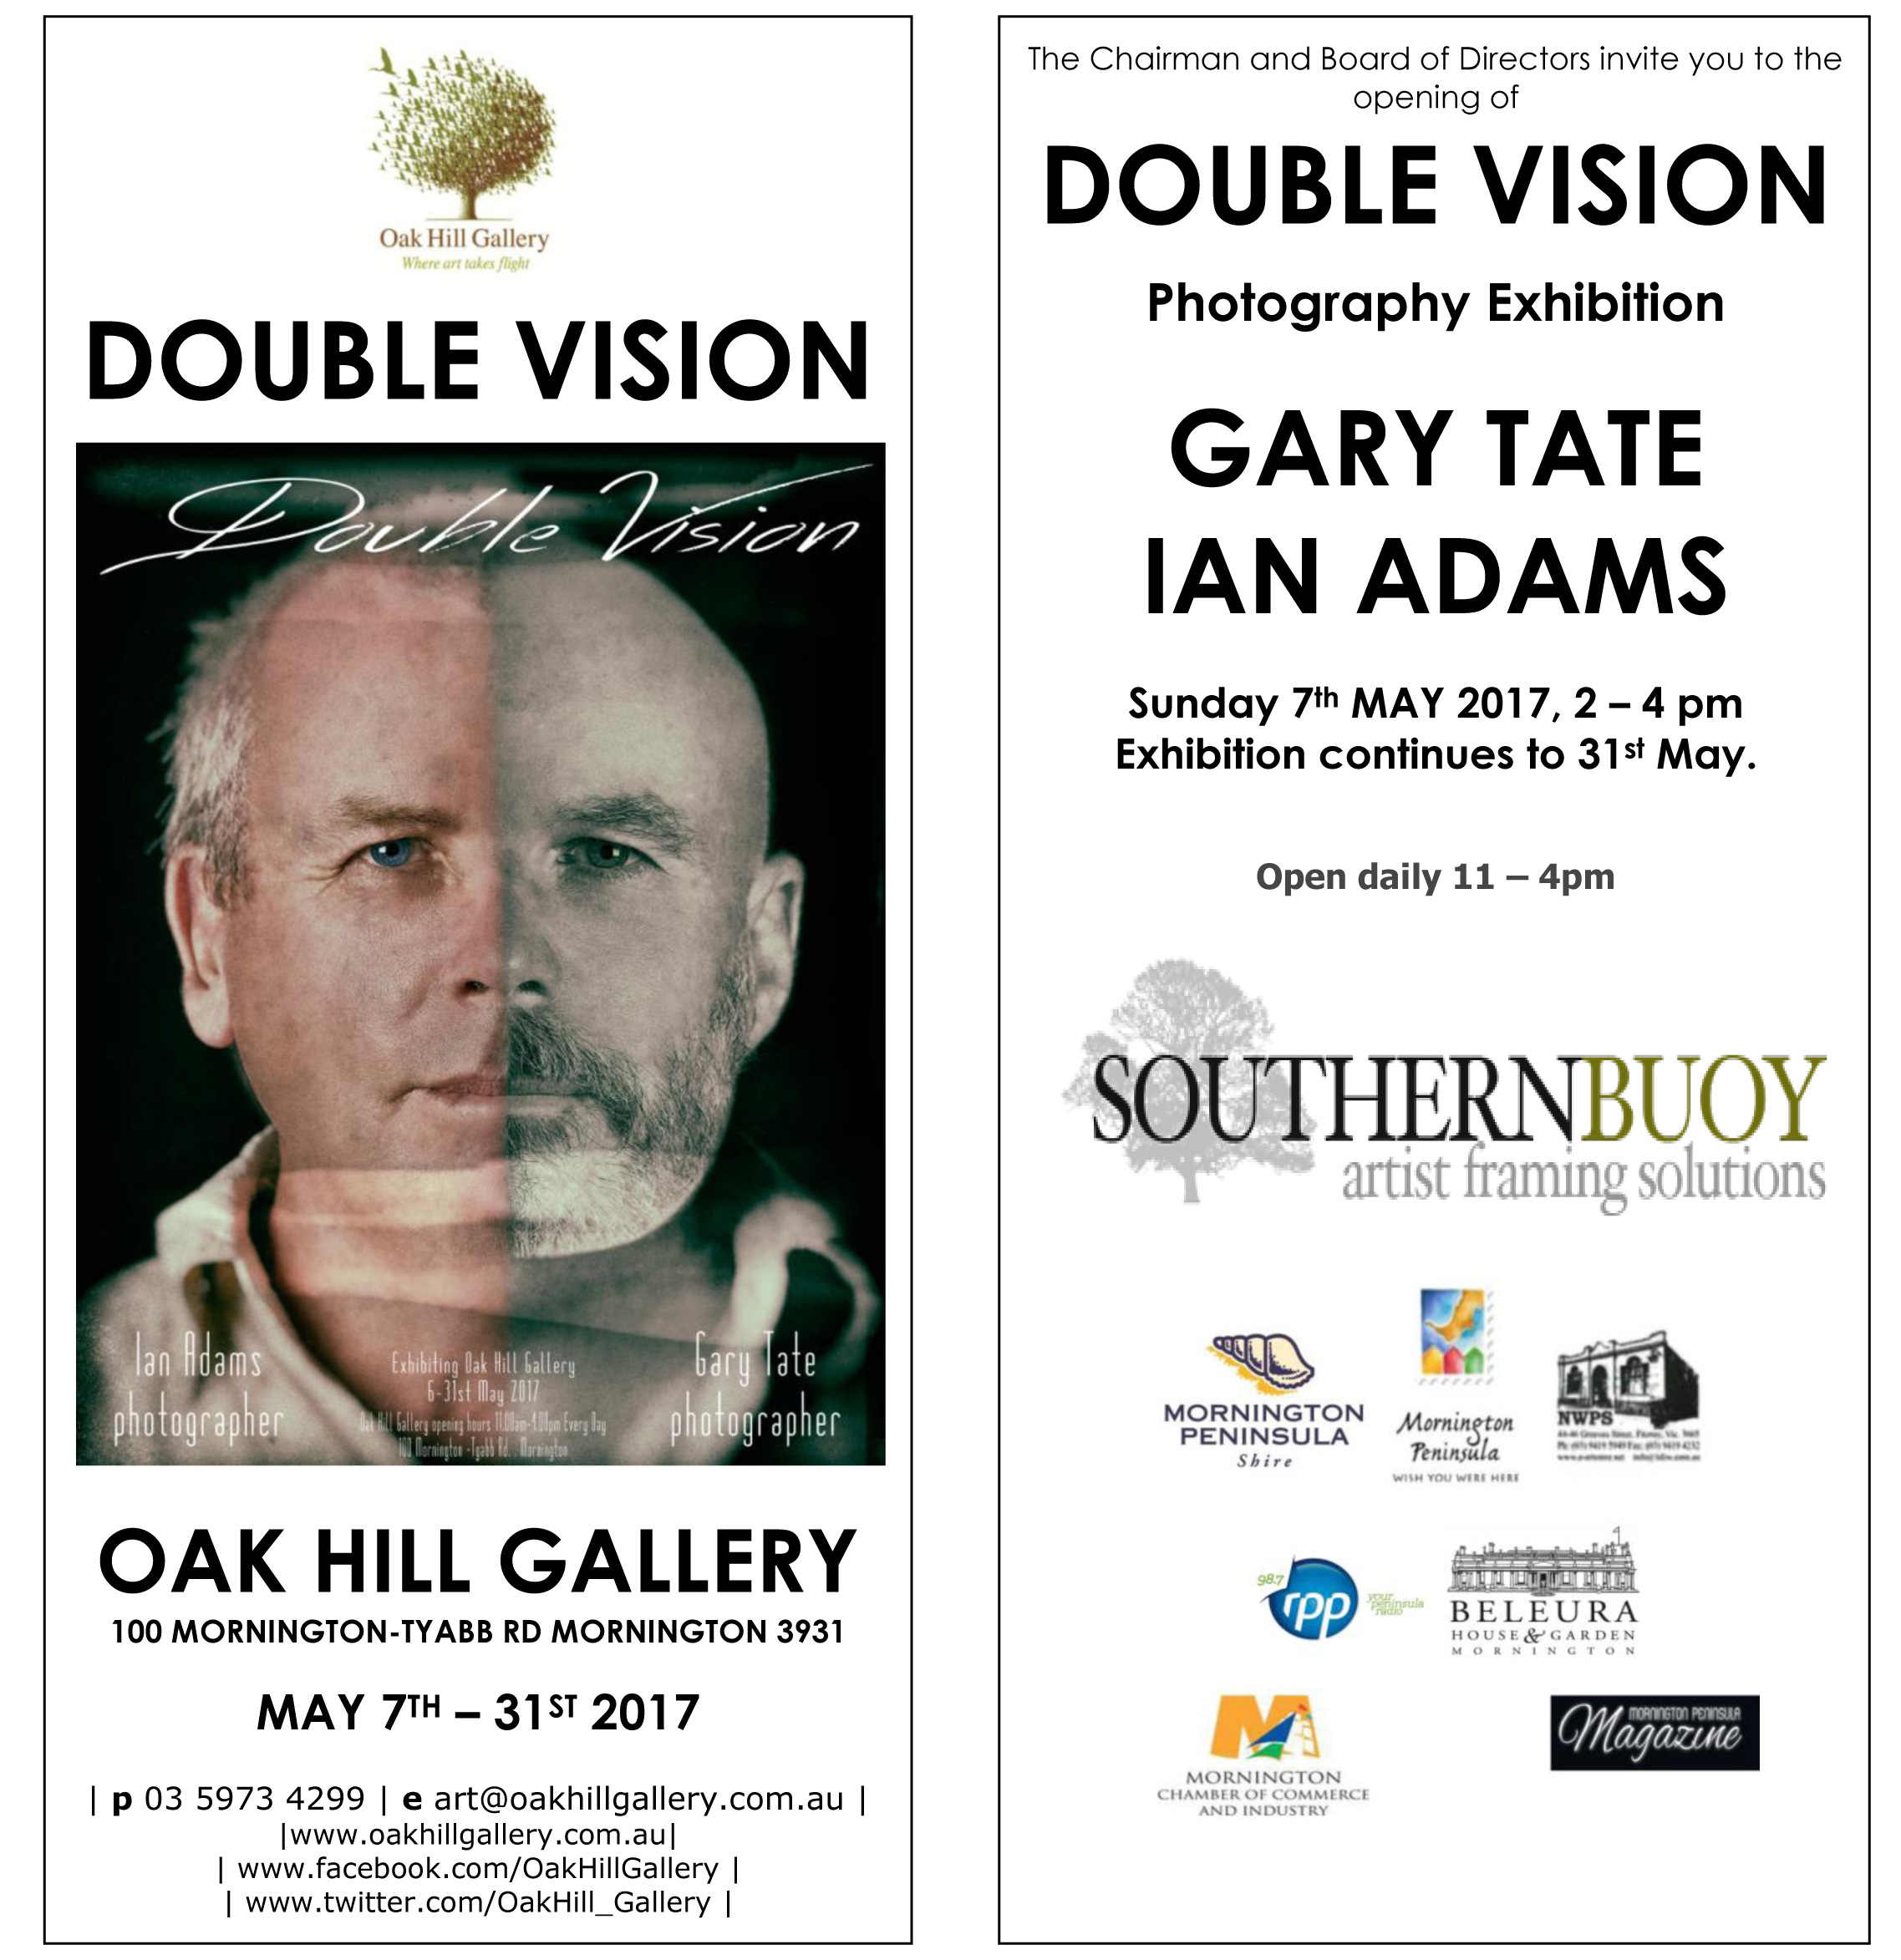 Double-Vision-Invitation-1